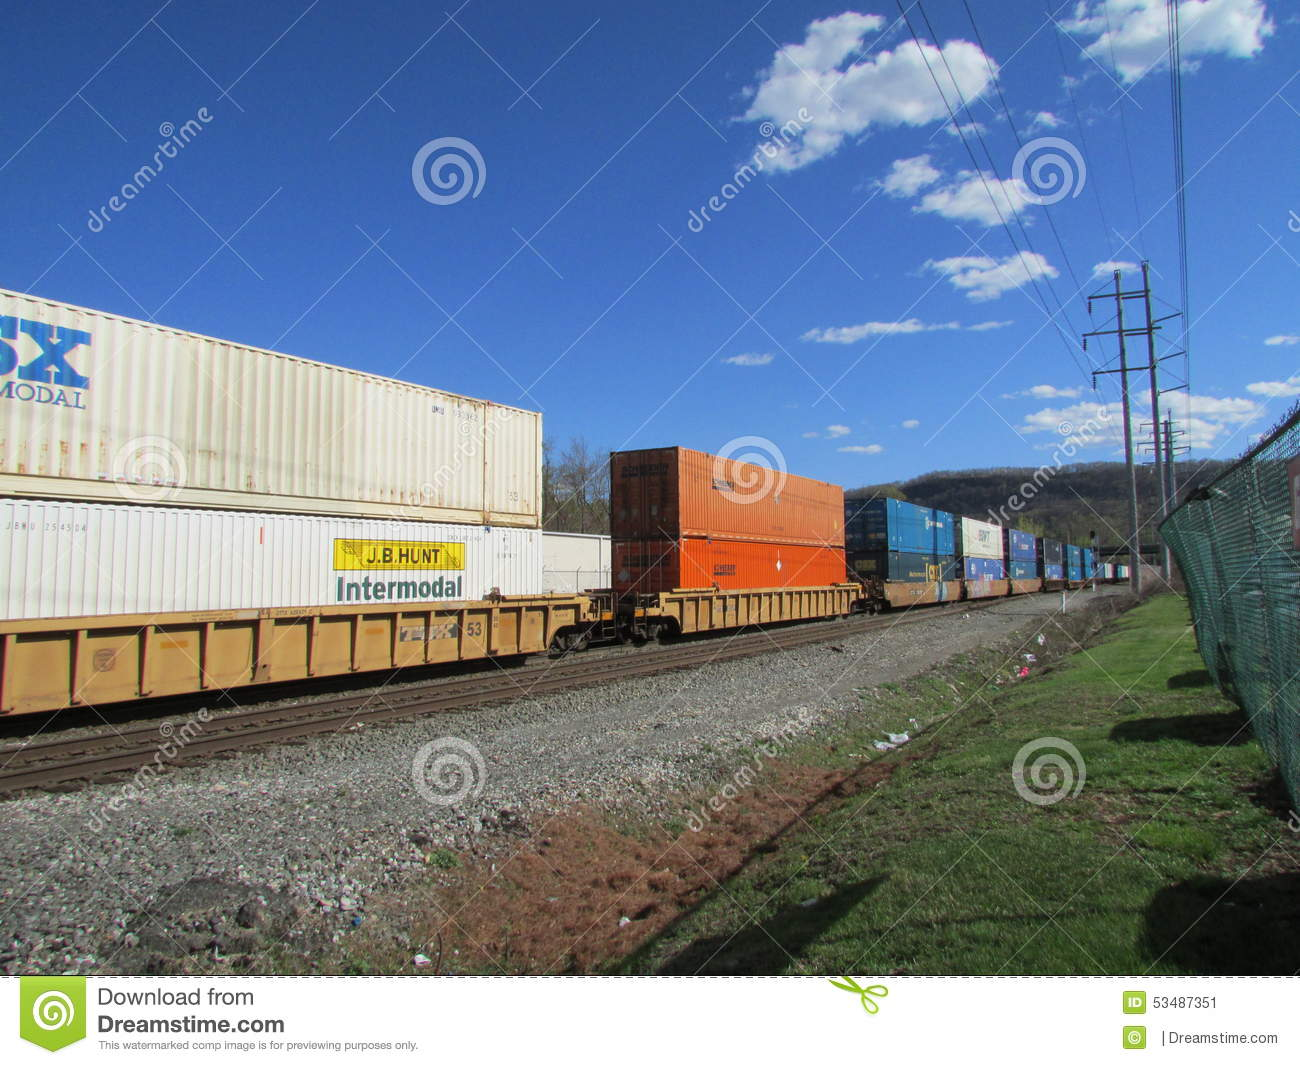 download rail road cars with intermodal containers of csx jb hunt swift and schneider